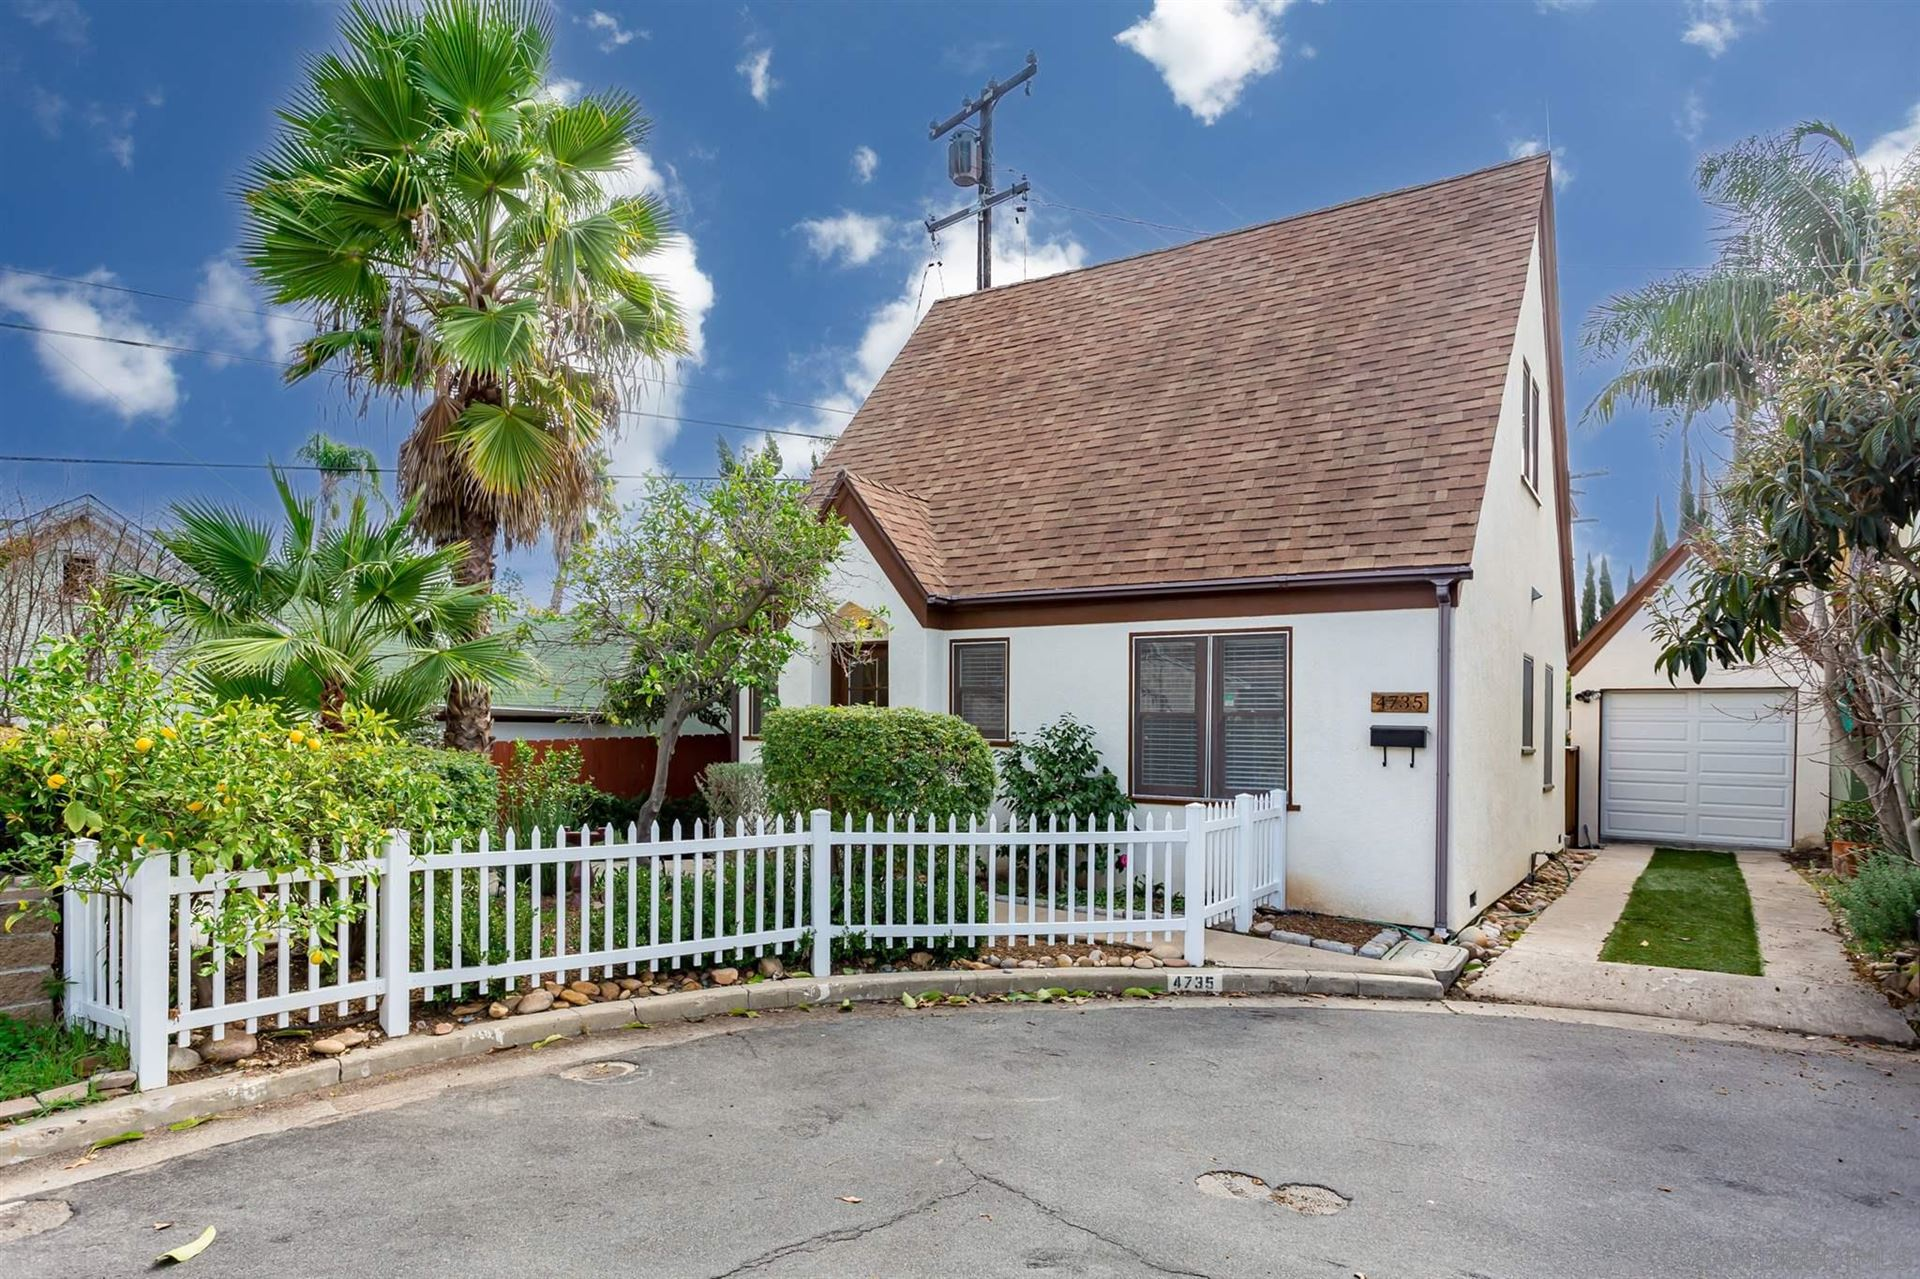 Photo for 4735 Vista Street, San Diego, CA 92116 (MLS # 210005947)